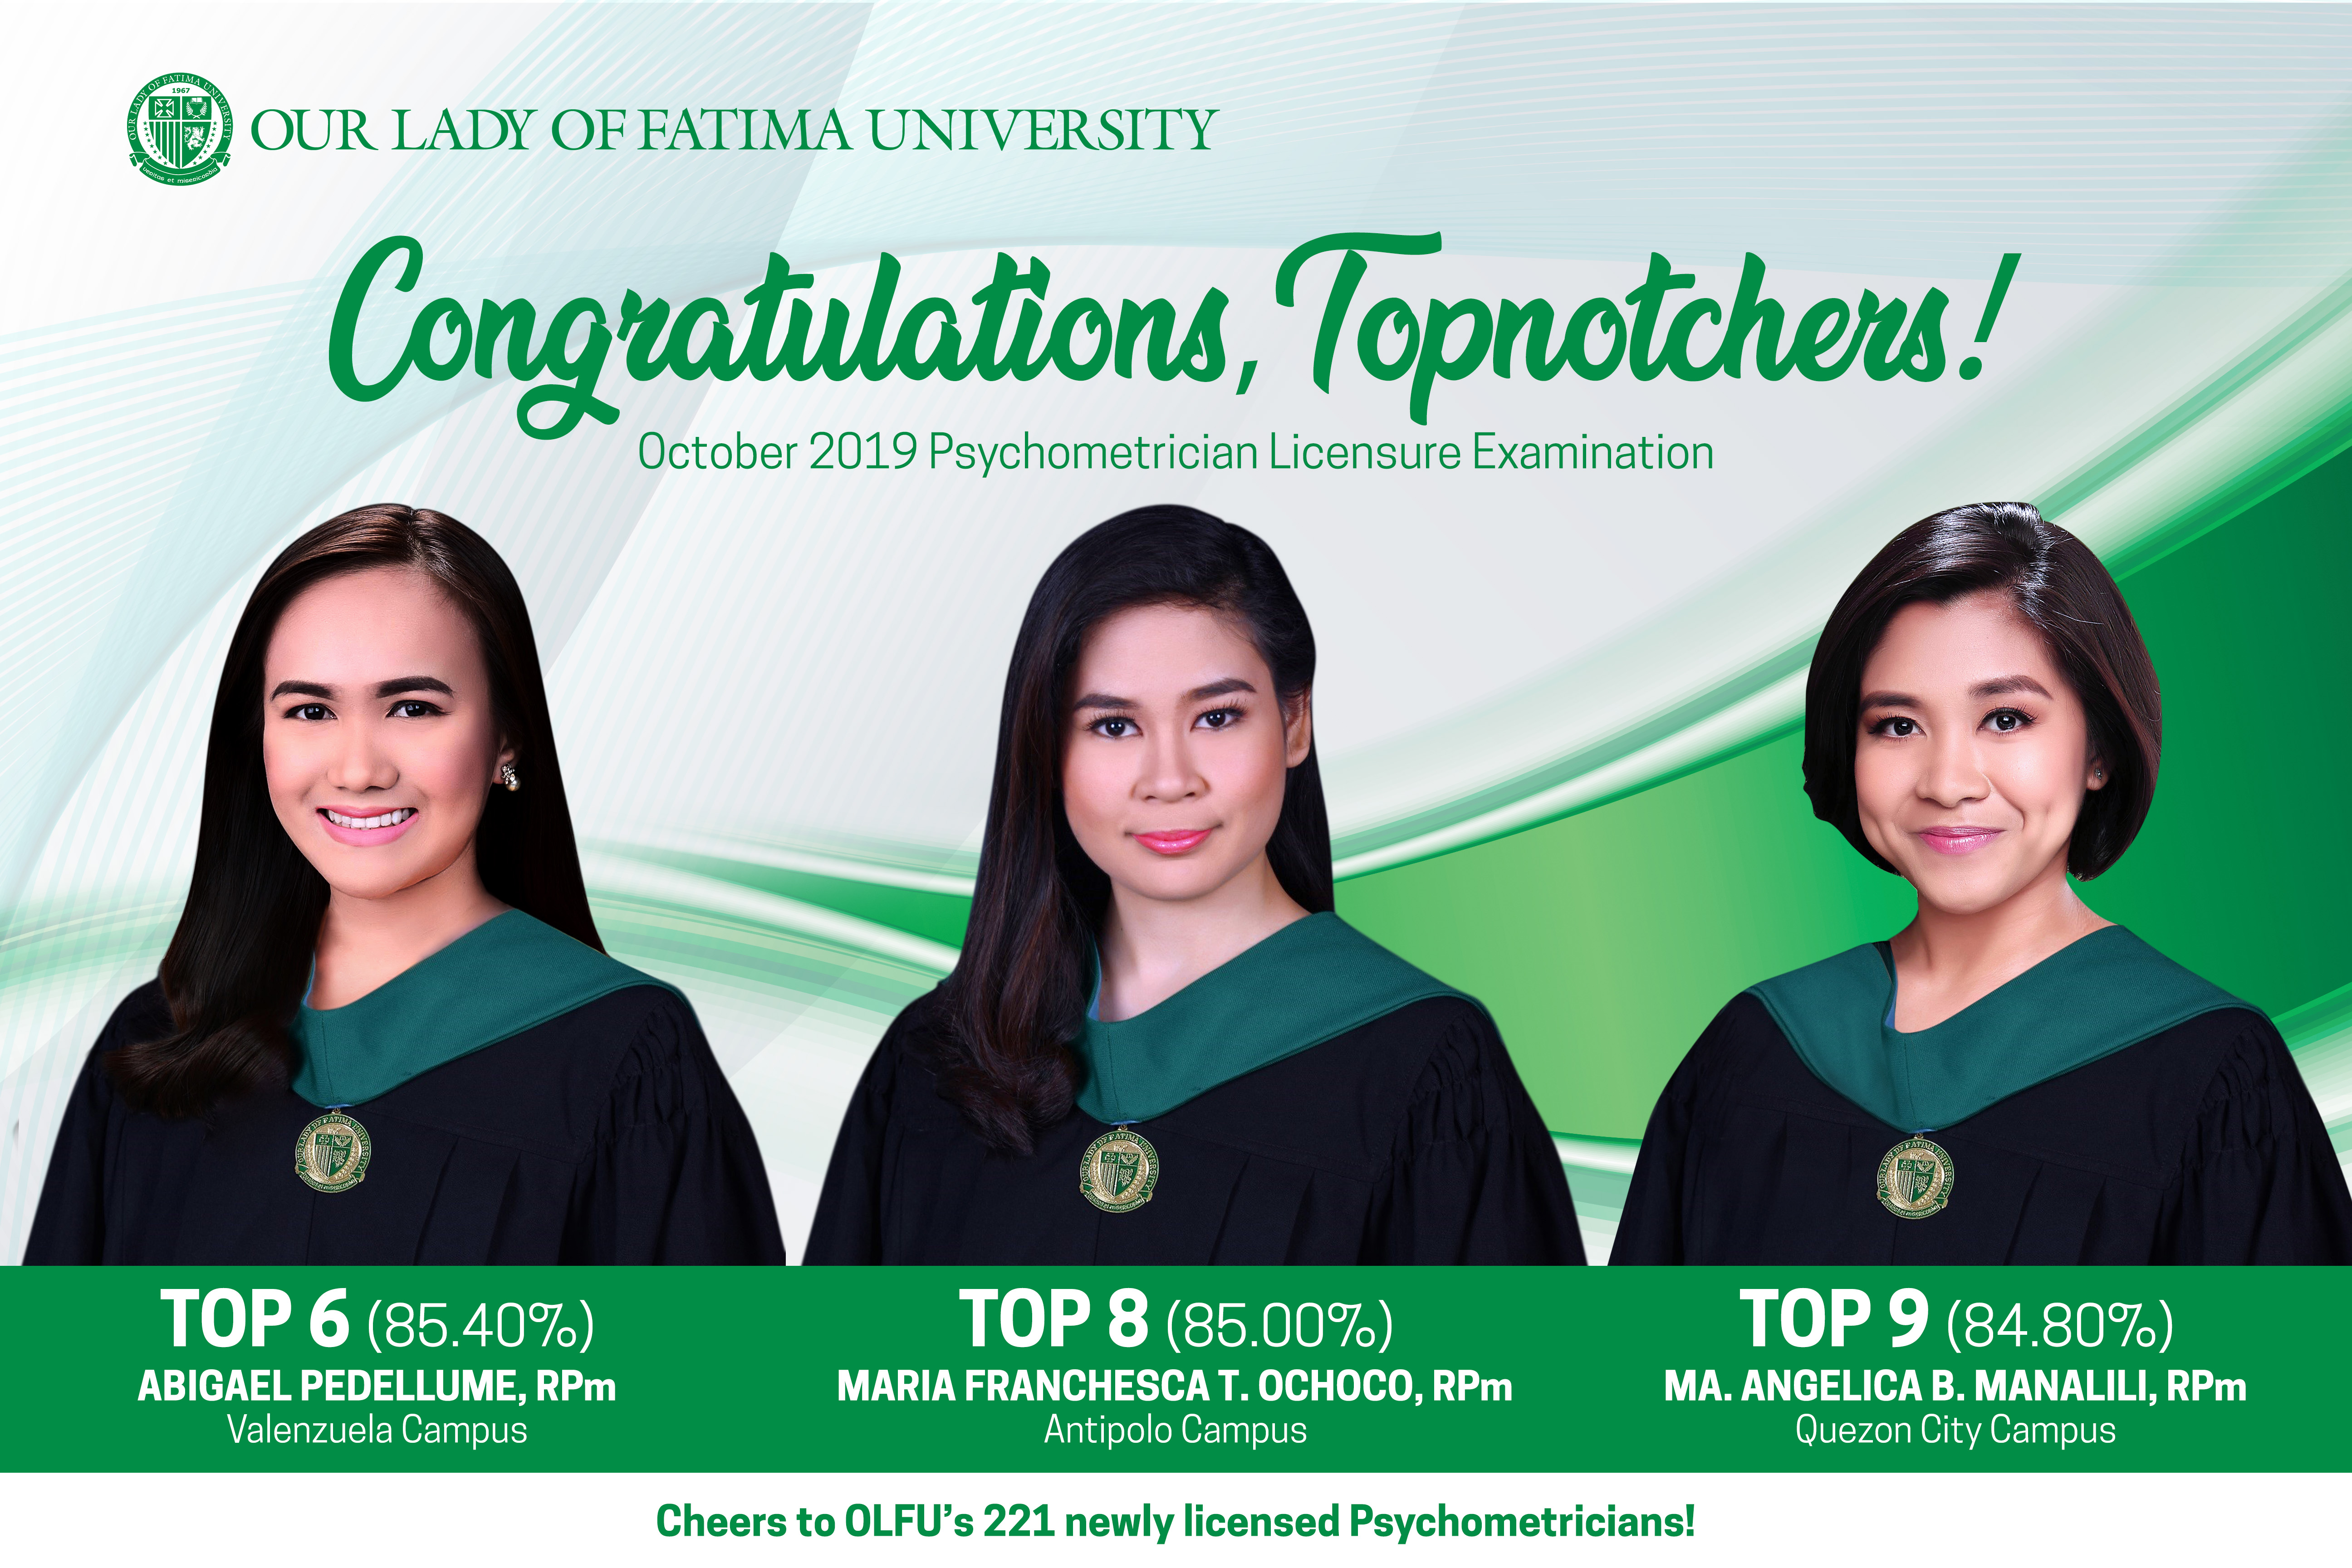 Fatimanians earn Triple Win in October 2019 Psychometrician Licensure Exam